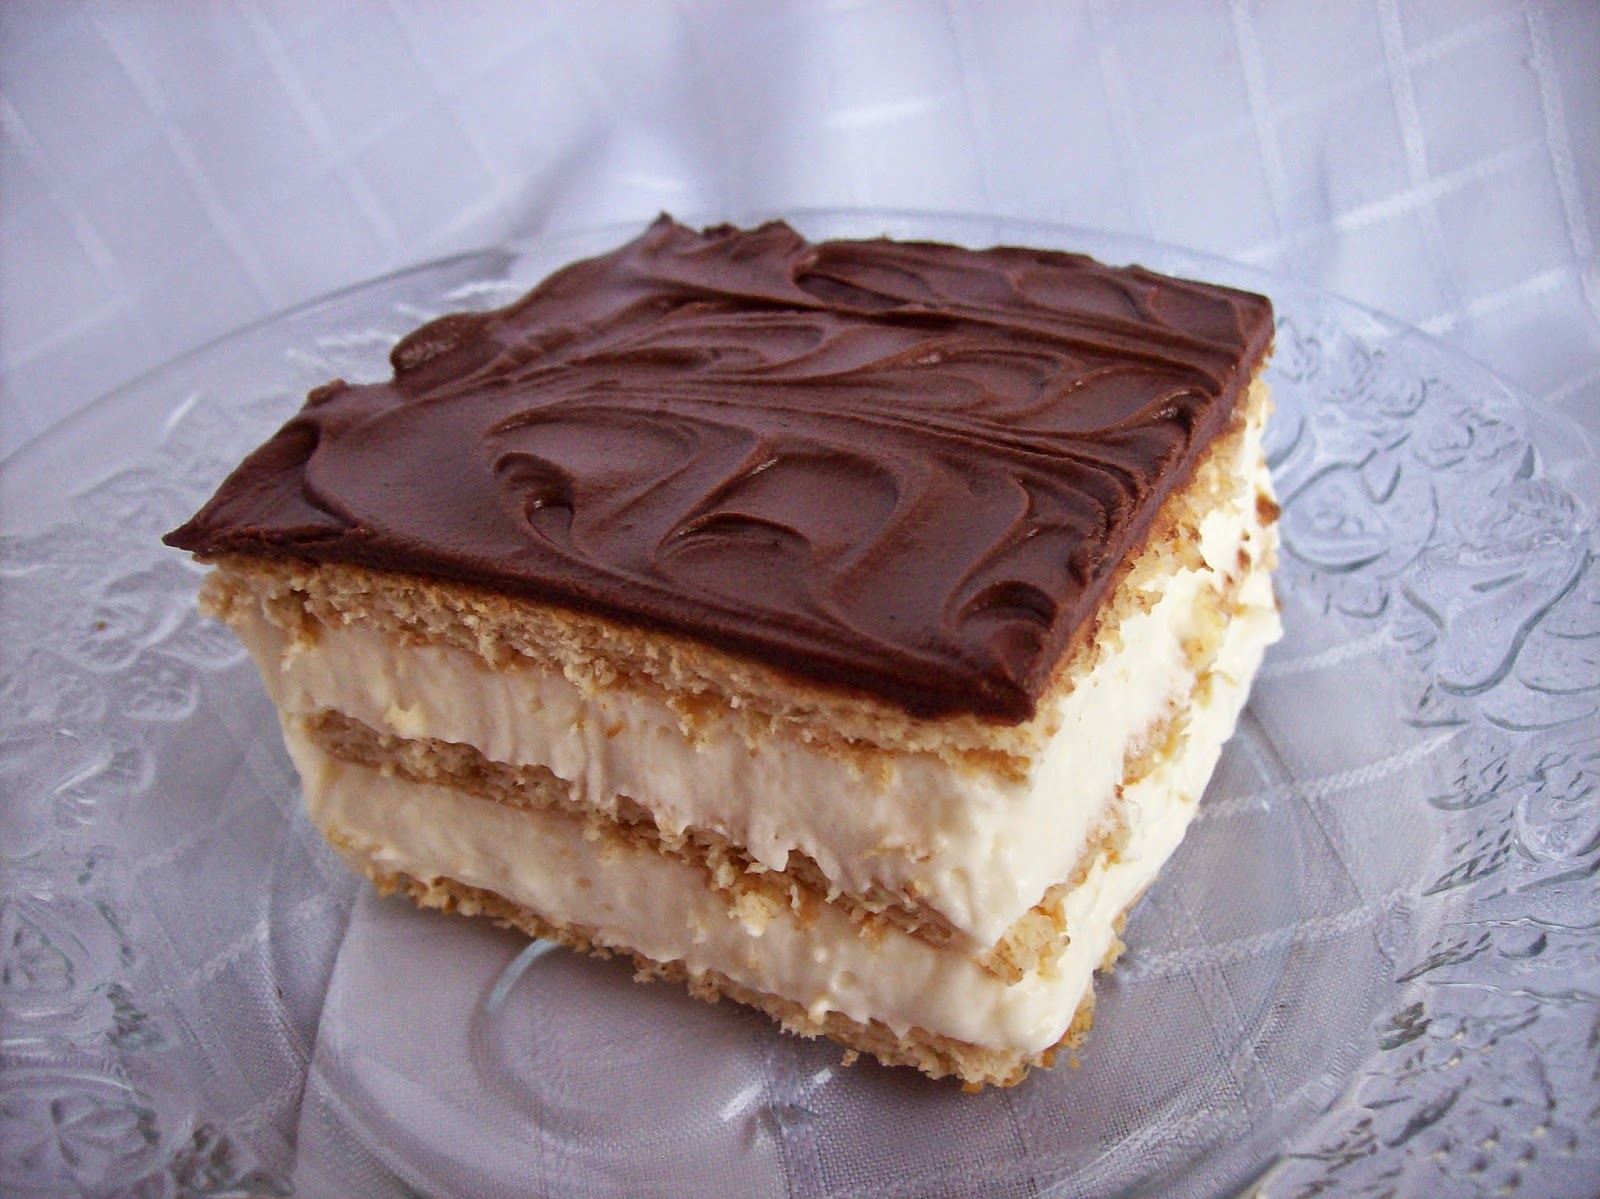 Stuffed At the Gill's: Chocolate Eclair Cake